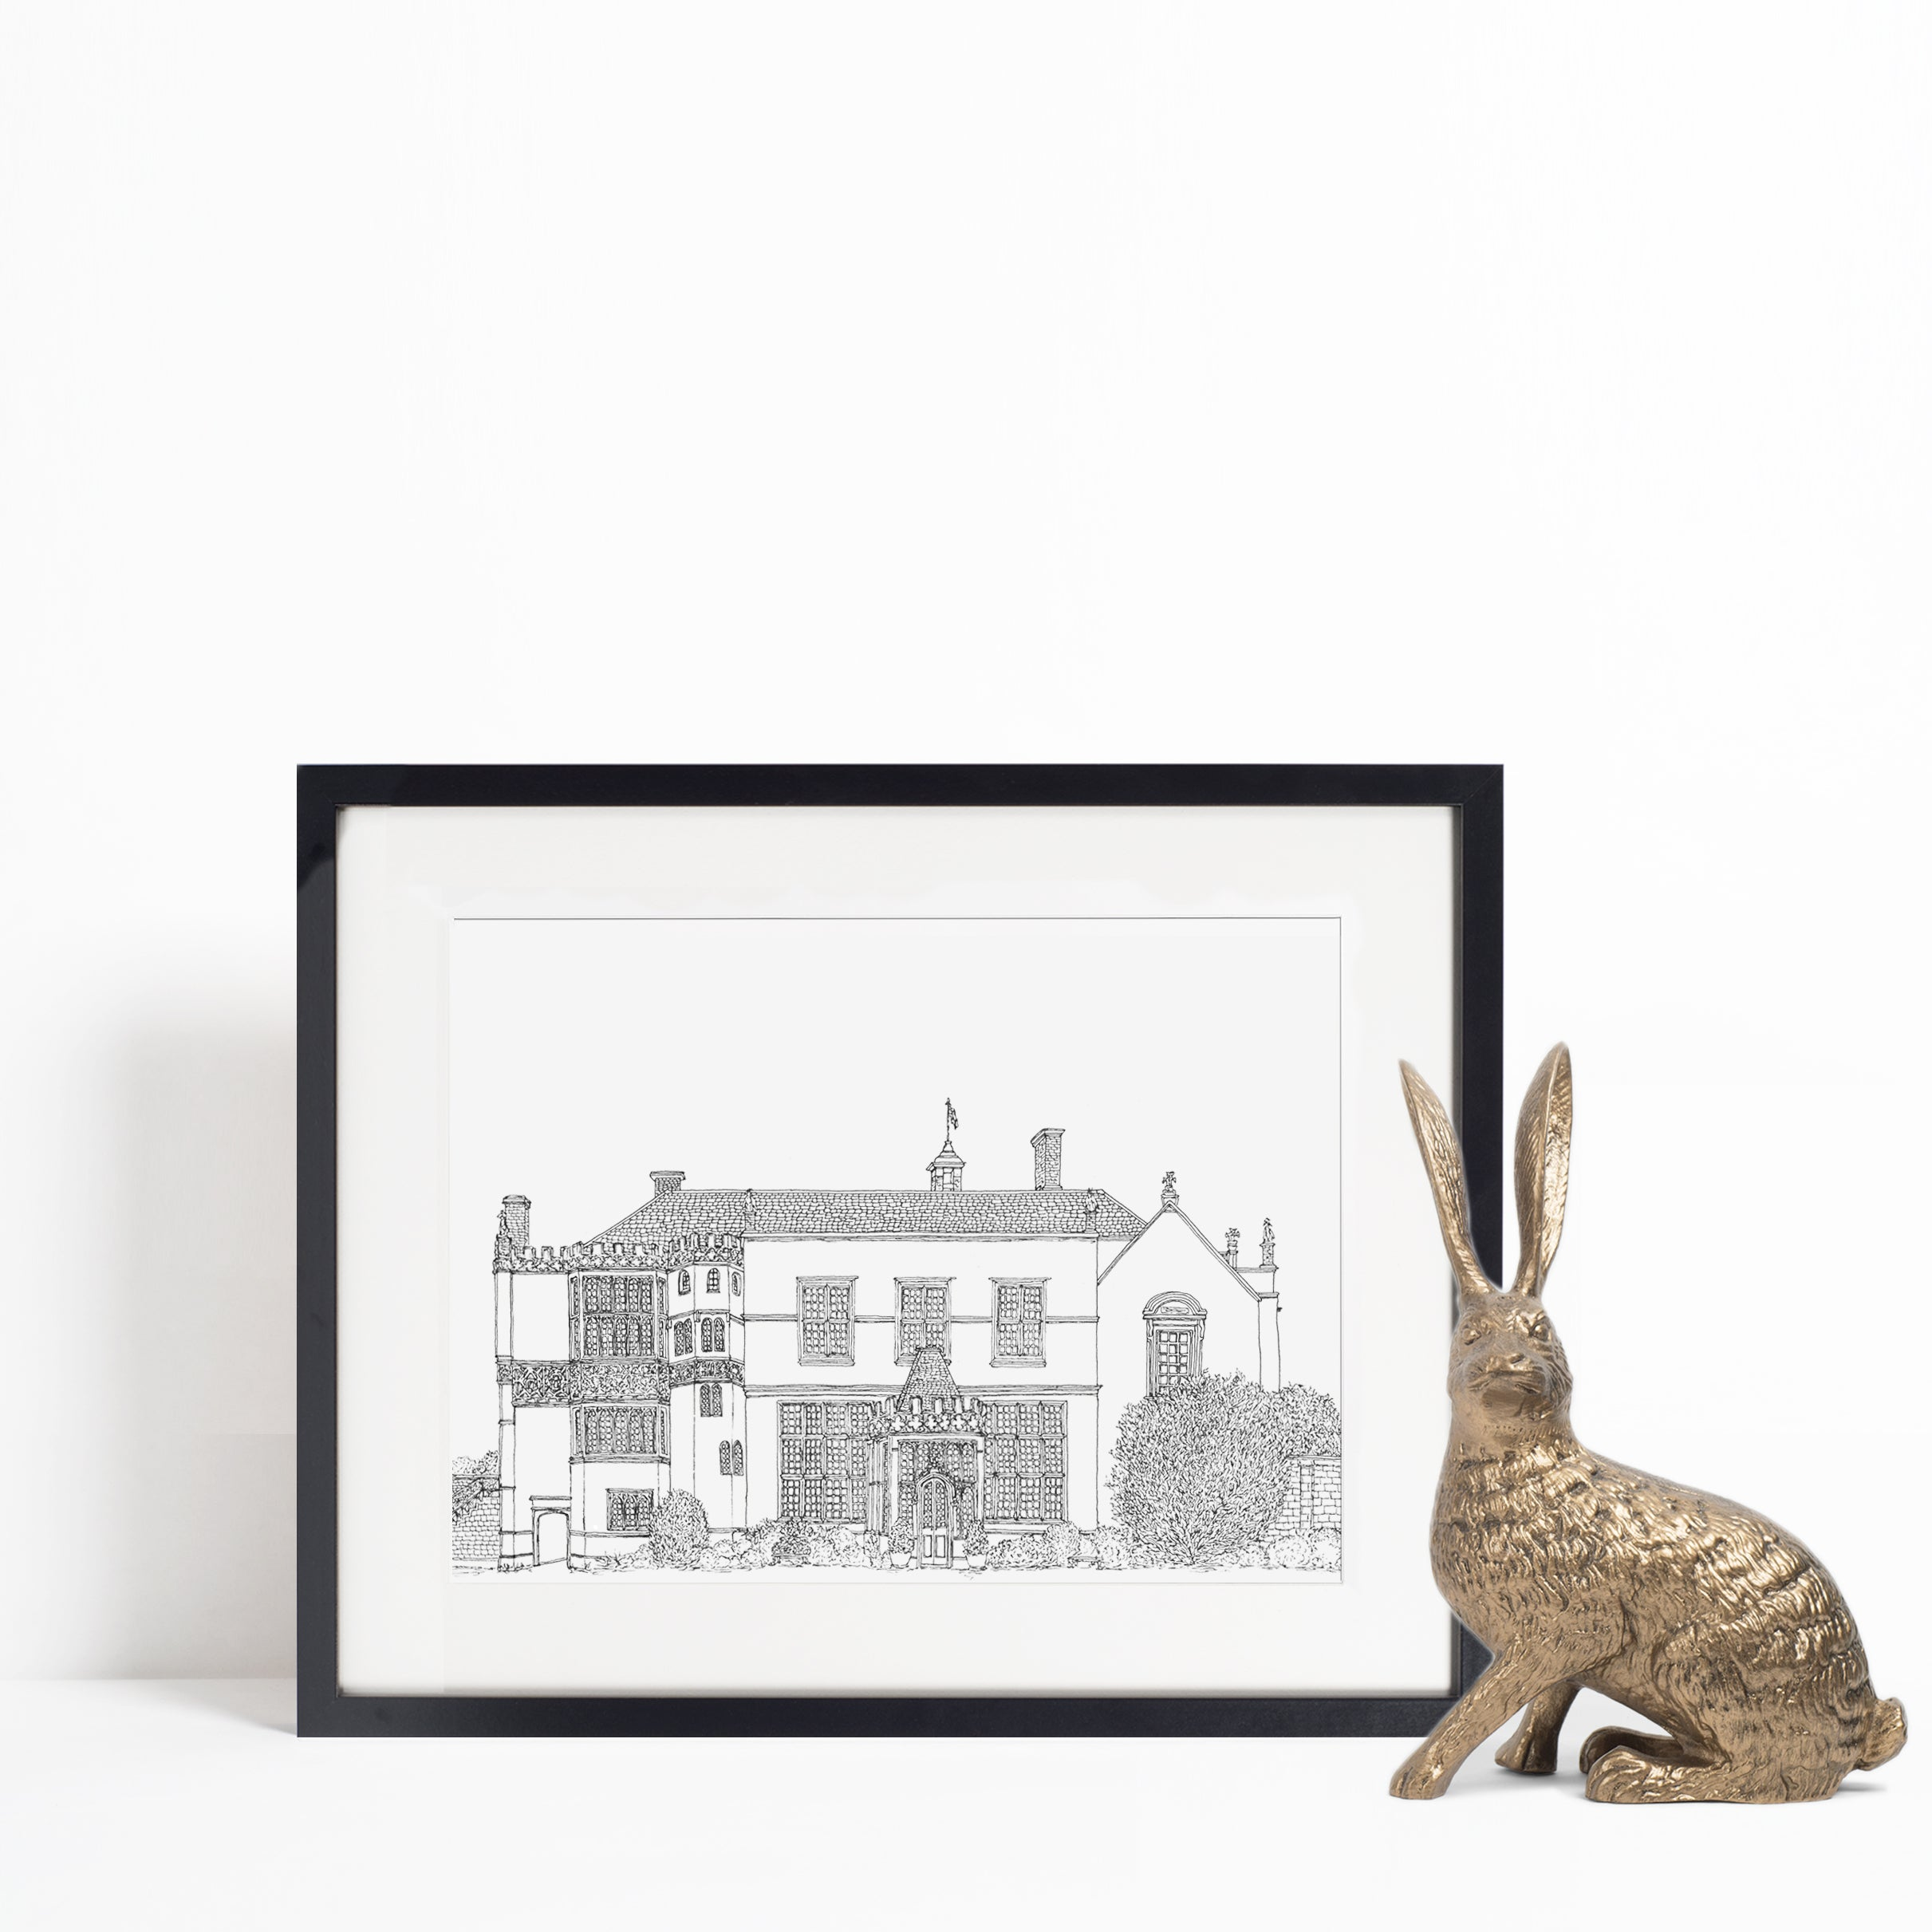 Brympton D'Evercy House, Yeovil, Somerset illustration | ink & white